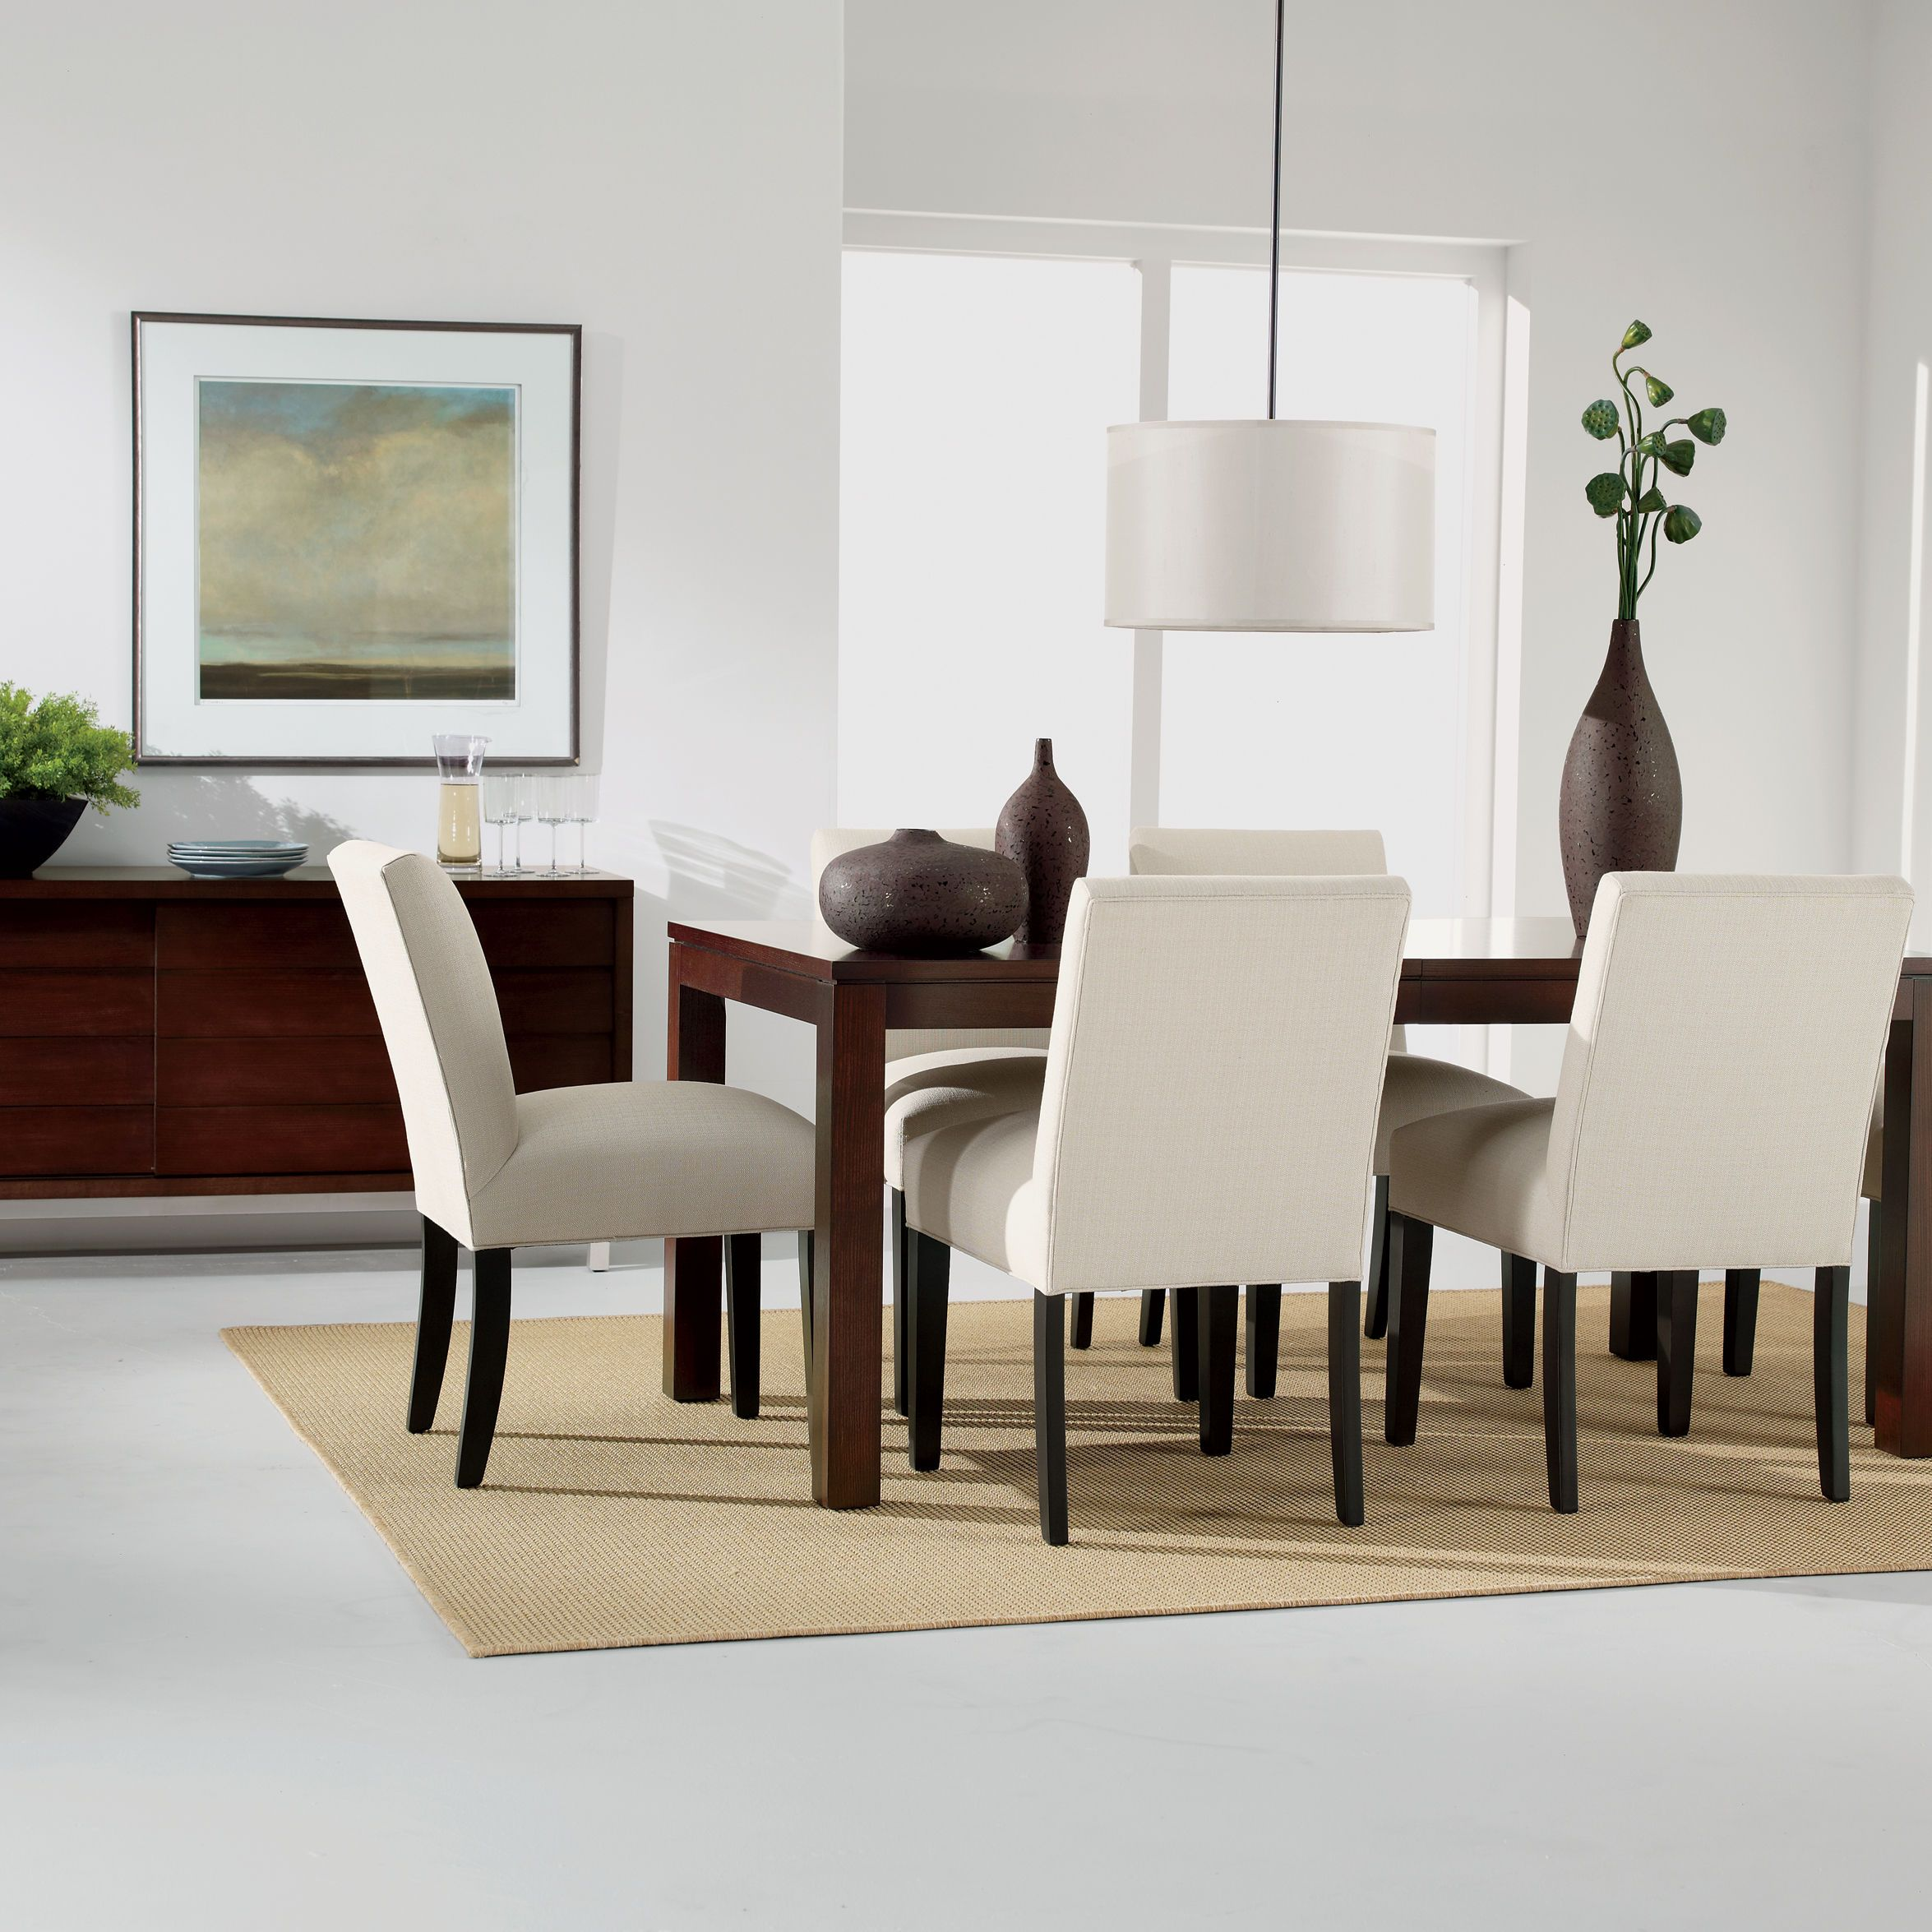 Ethan Allen Dining Room Sets: Midtown Dining Table - Ethan Allen US